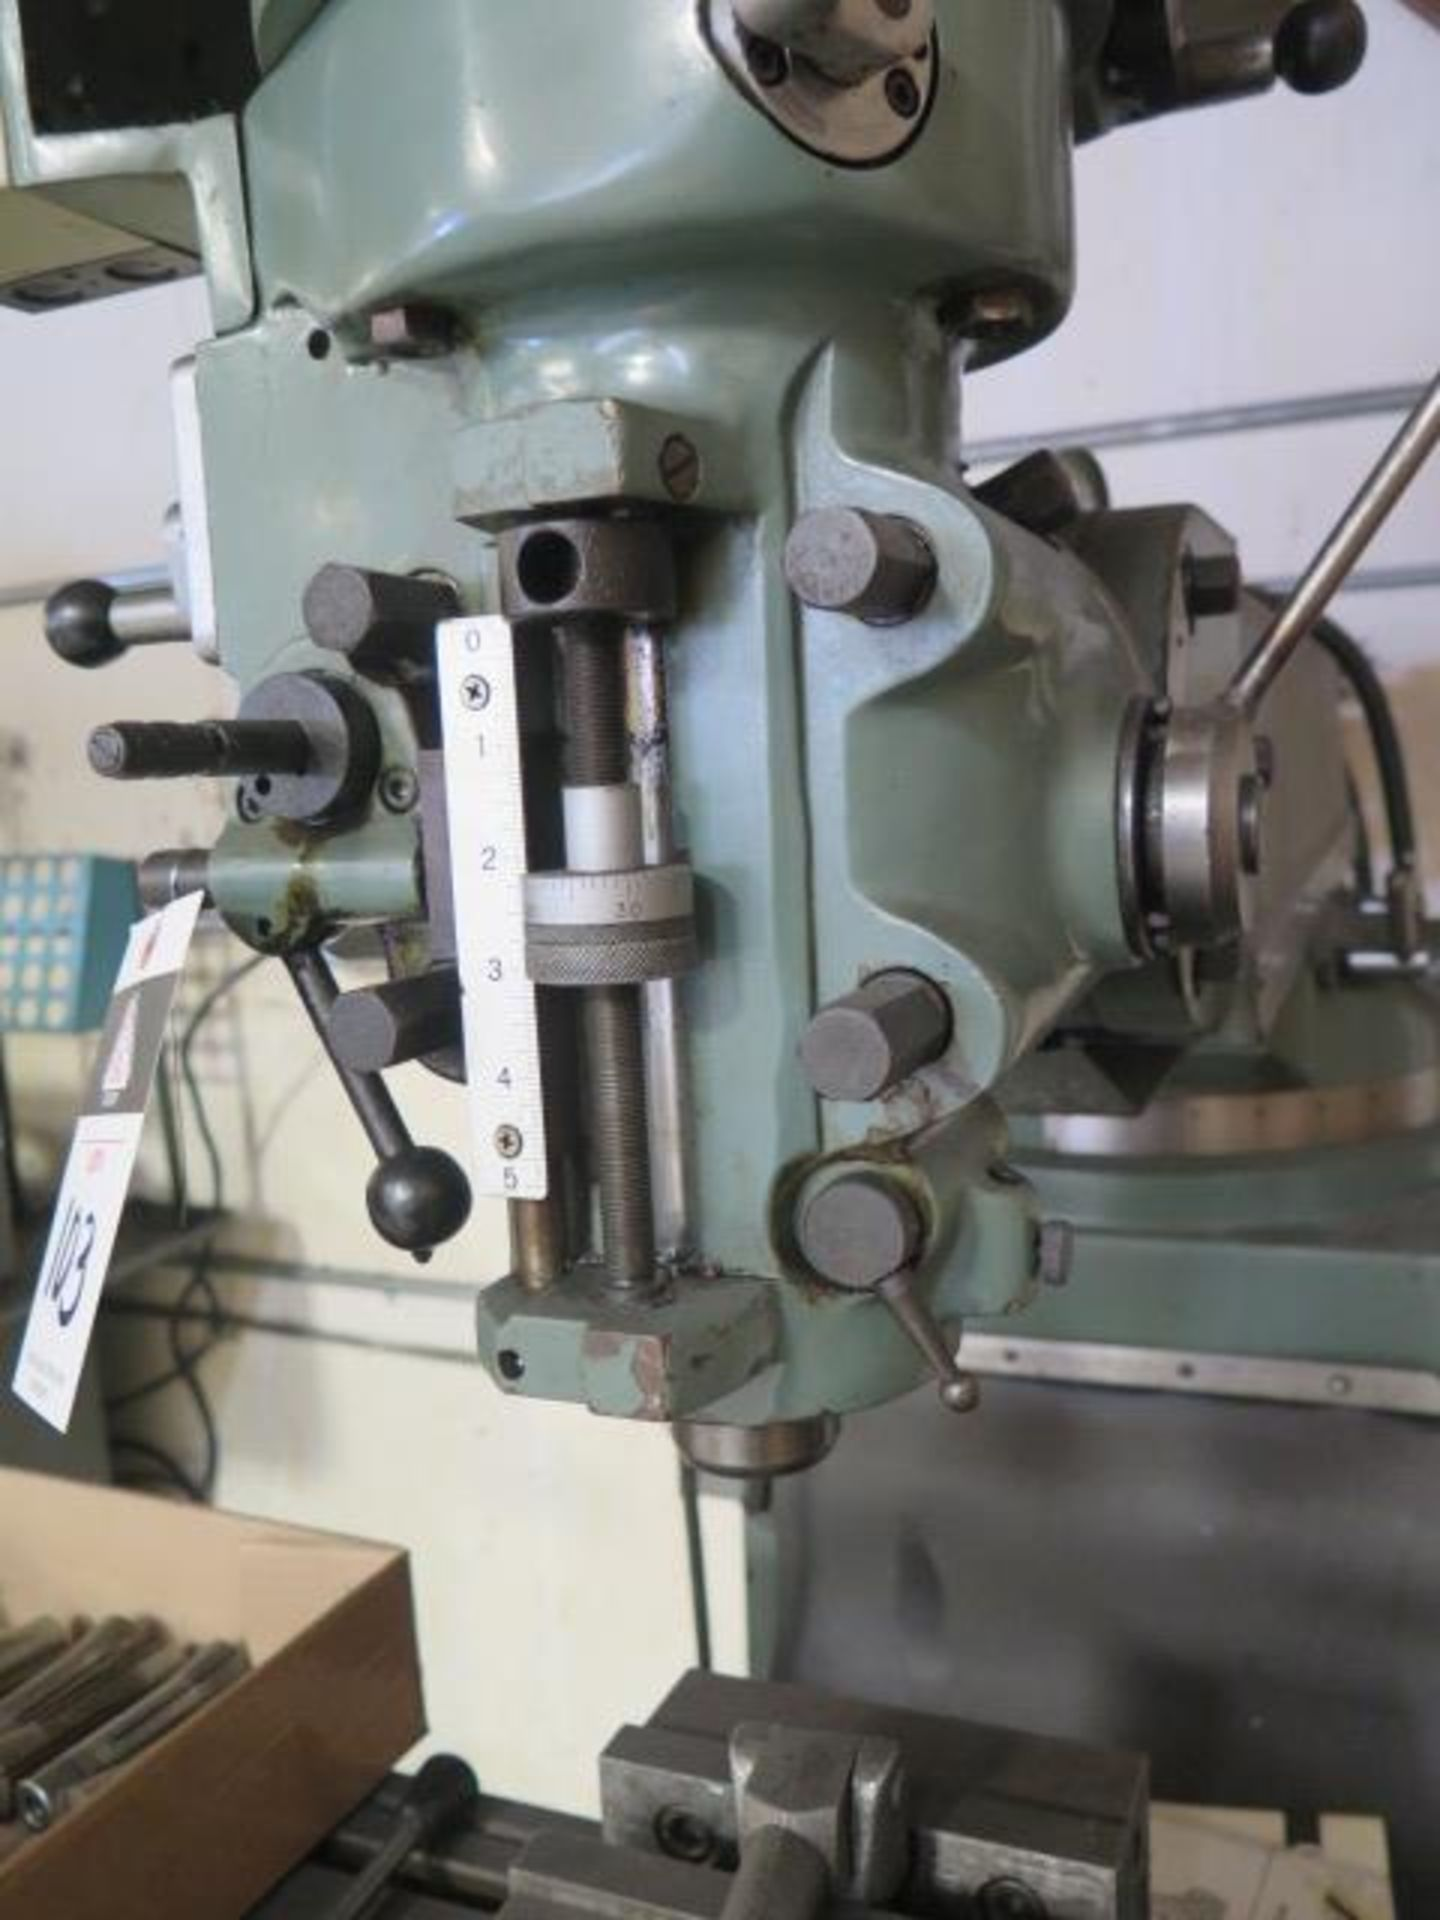 """Import Vertical Mill w/ 3Hp Motor, 80-2720 RPM, 8-Speeds, R8 Spindle, 10"""" x 48"""" Table (SOLD AS- - Image 6 of 9"""